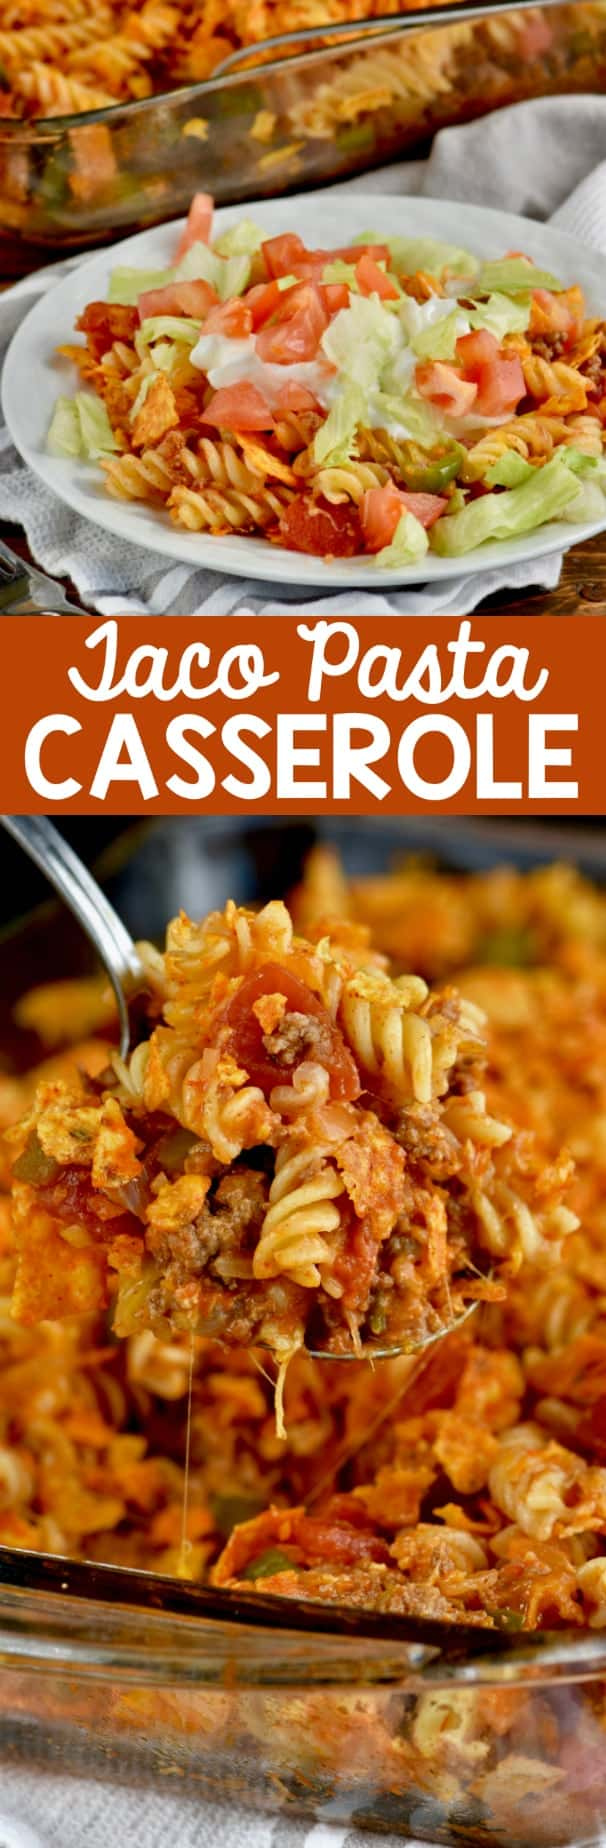 This Pasta Taco Casserole comes together FAST and is such a hearty, comforting dinner!